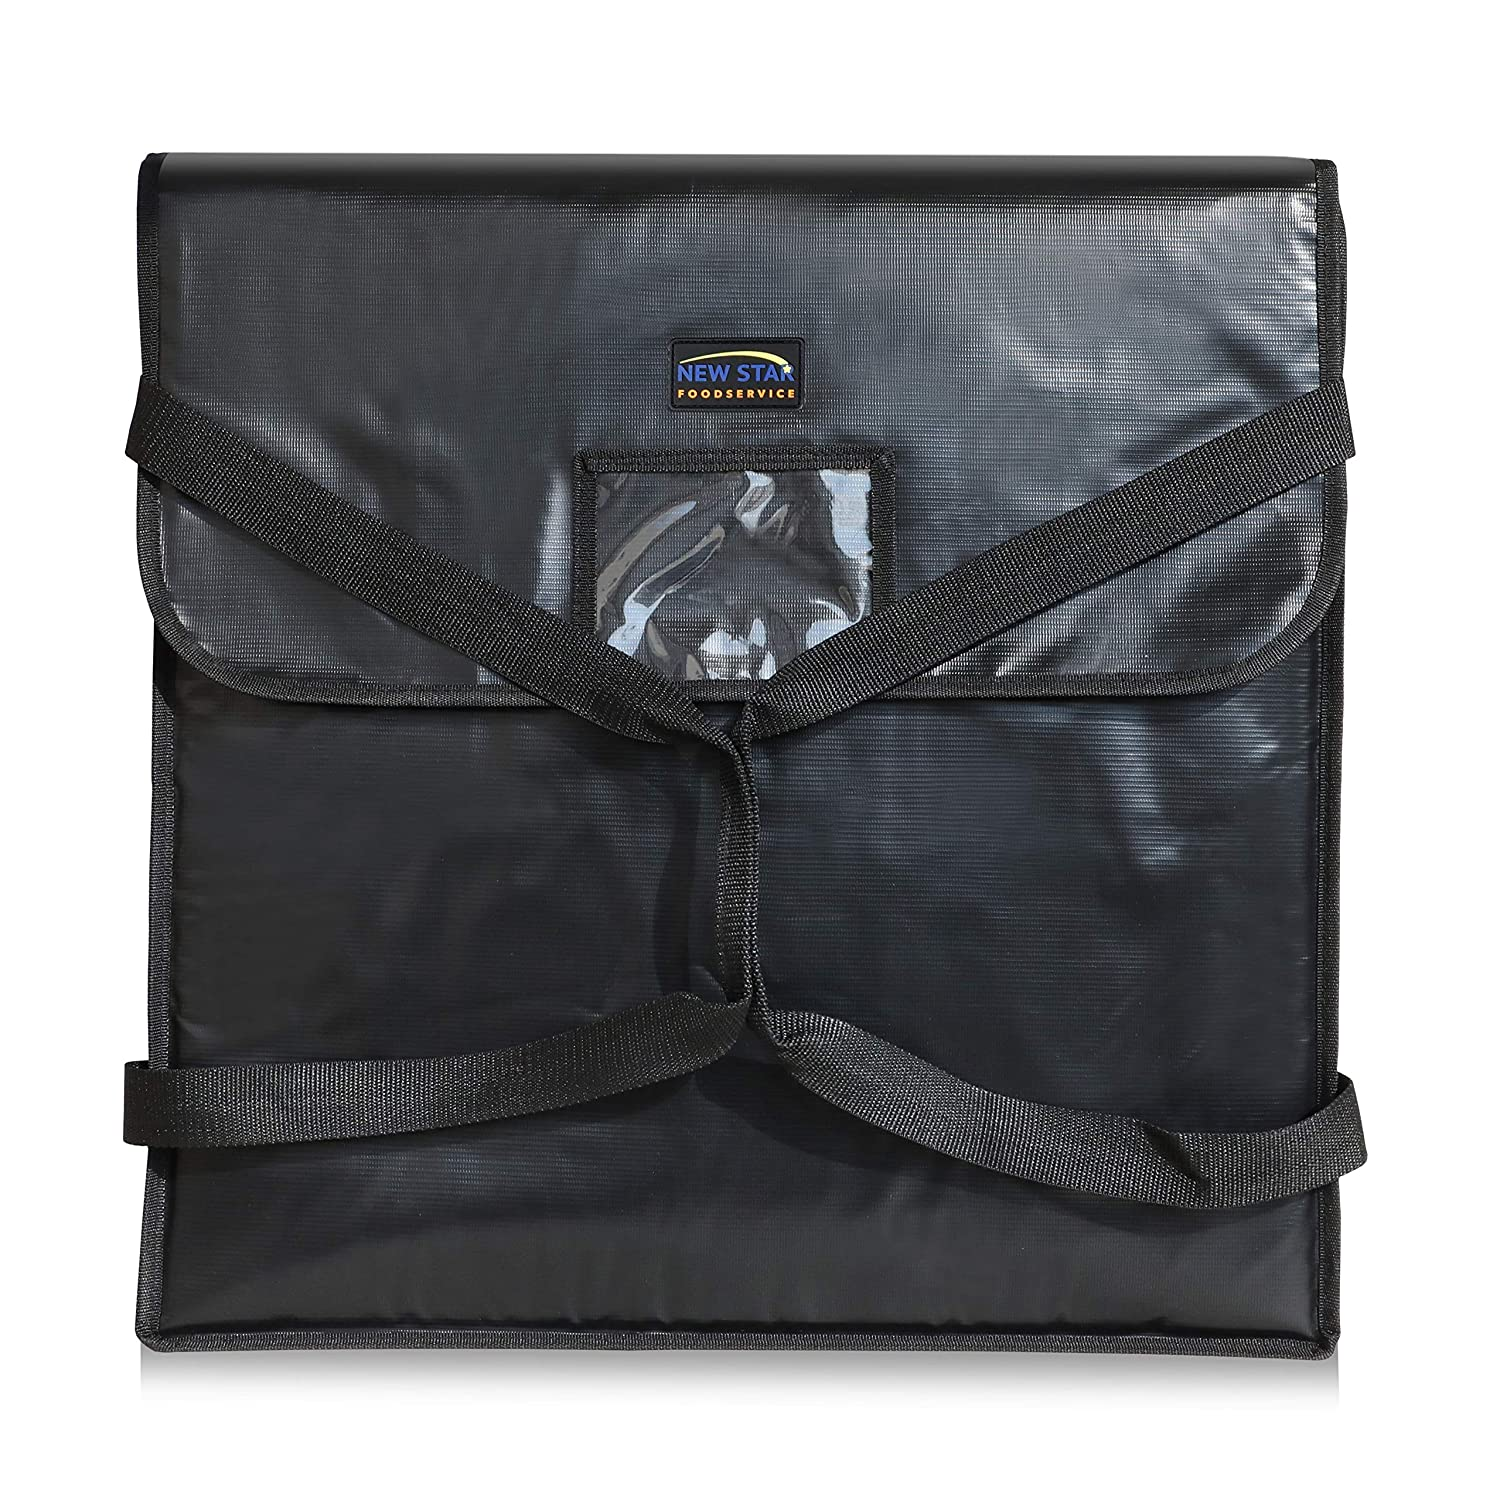 New Star Foodservice 51124 Insulated Pizza Delivery Bag, 22 by 22 by 5-Inch, Black